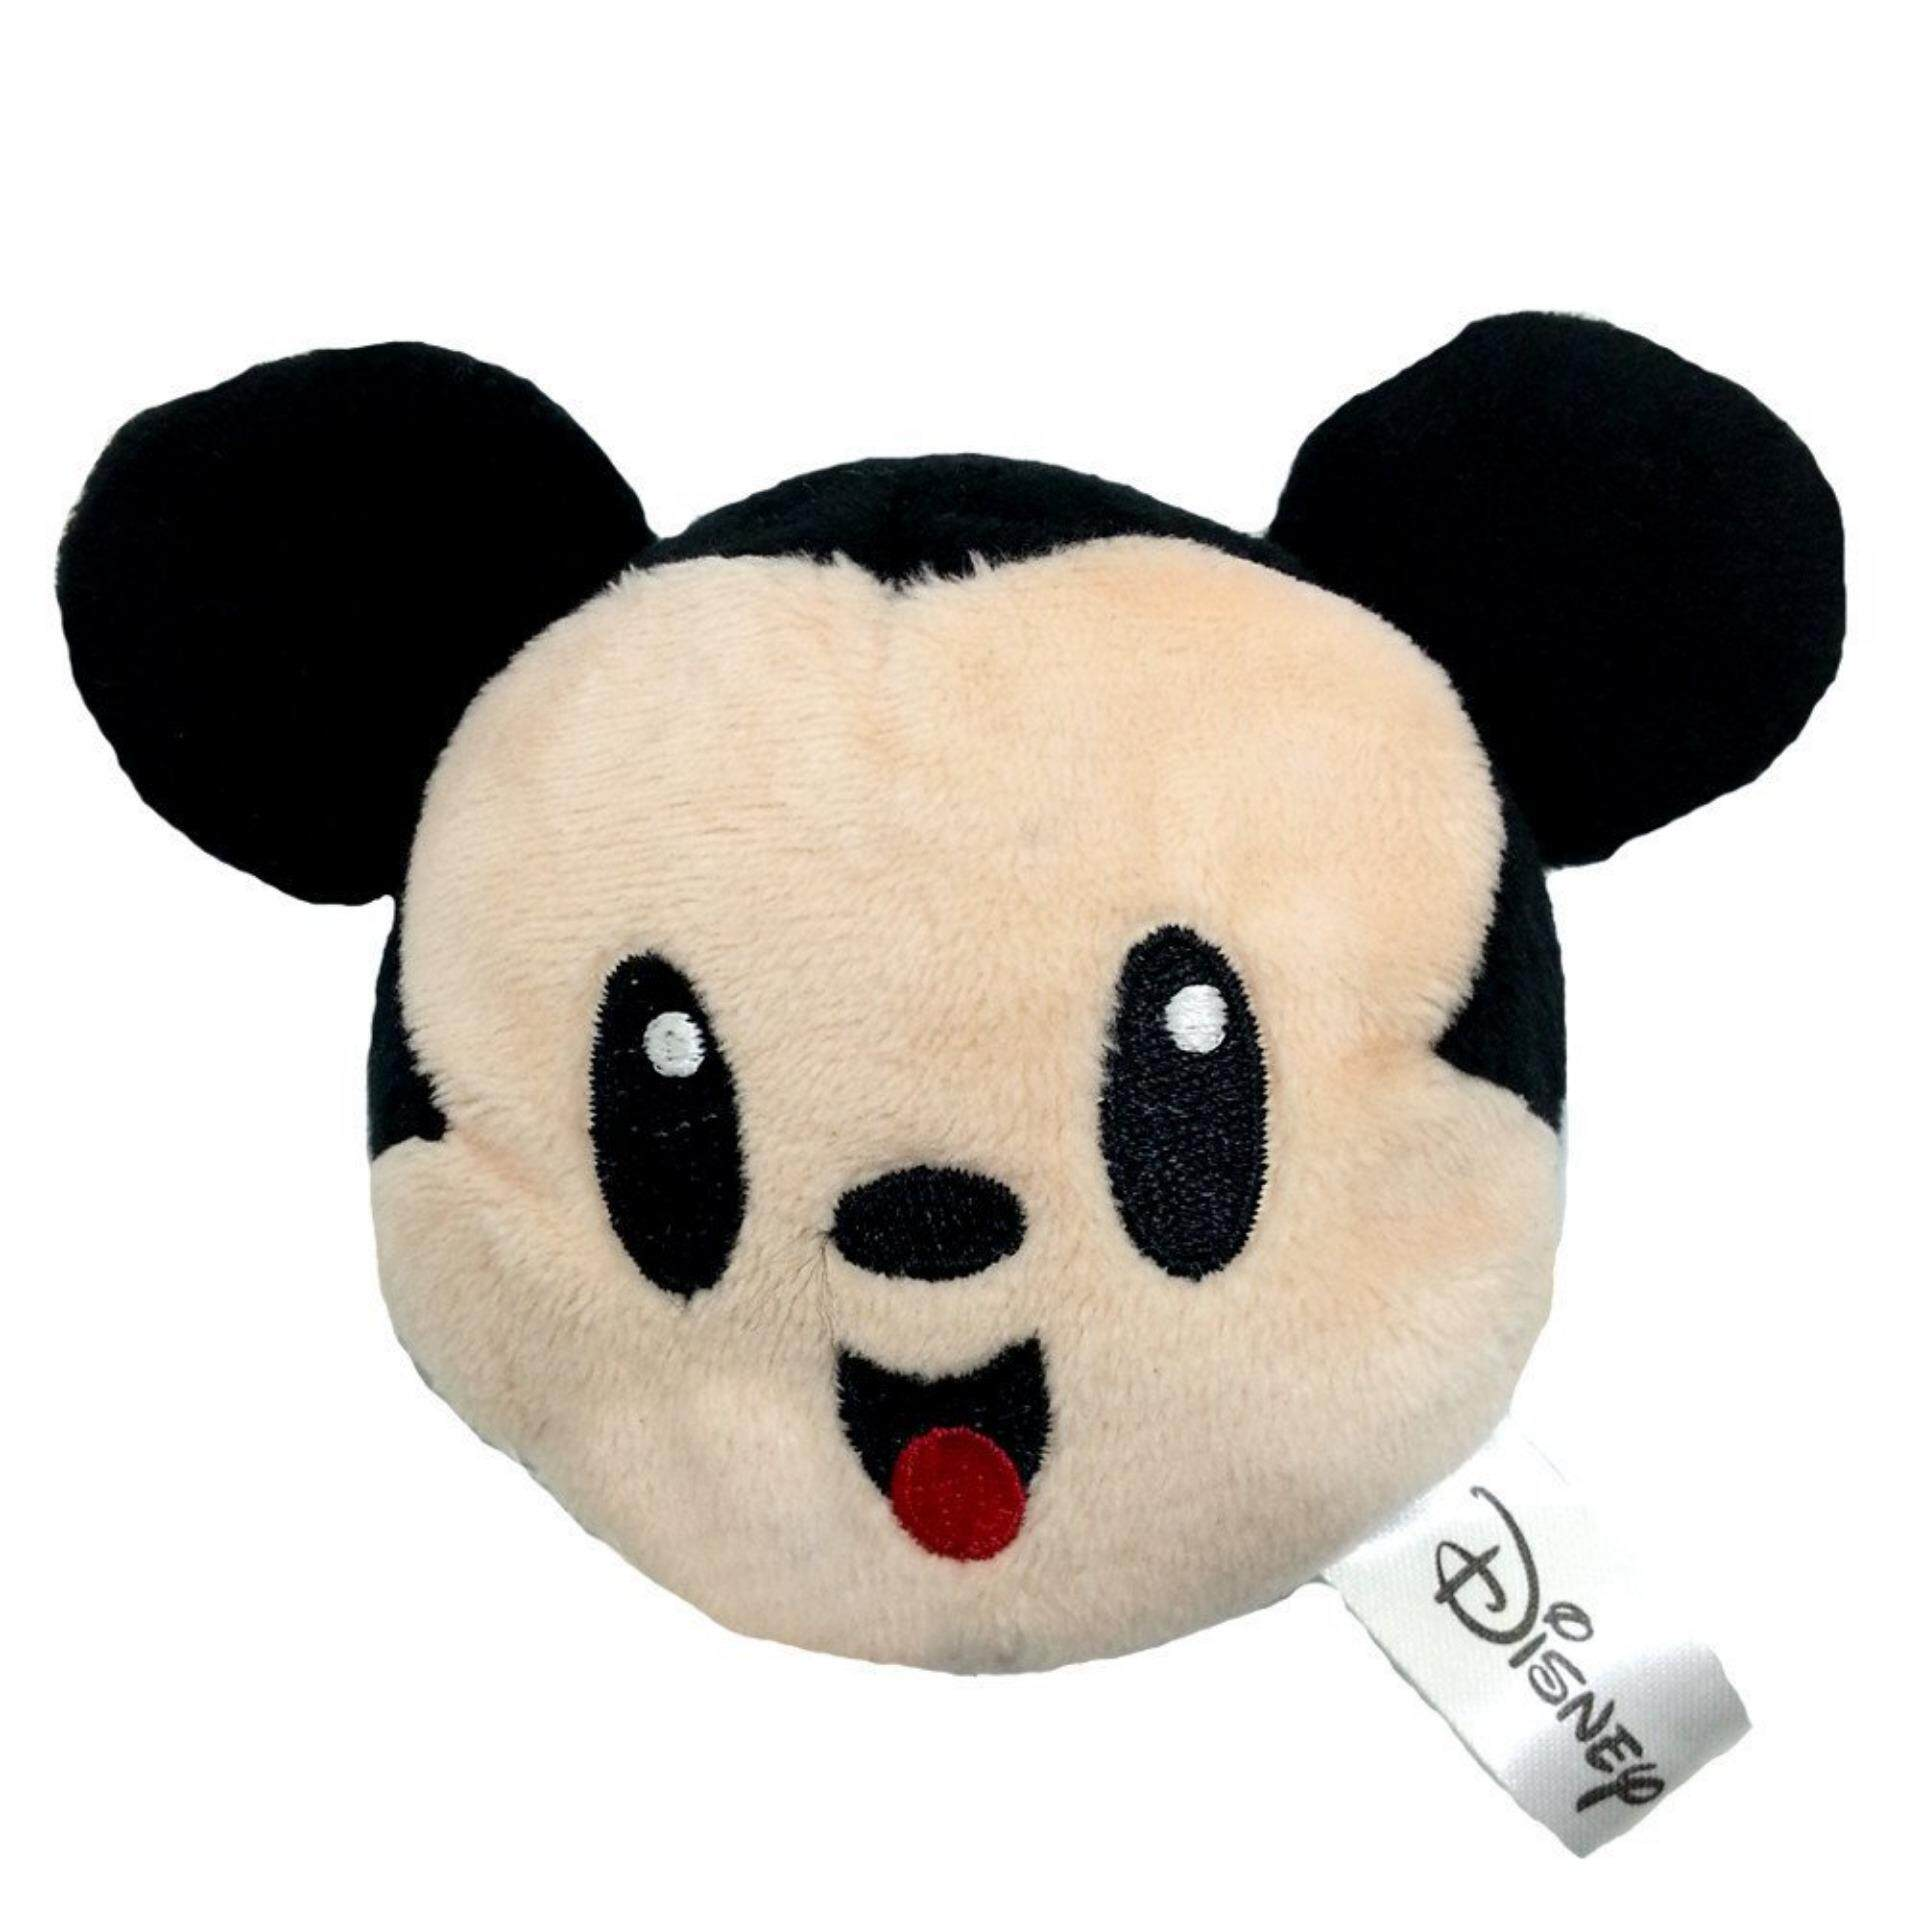 Disney Emoji Beanbags 2.5 Inches - Mickey Laugh toys for girls